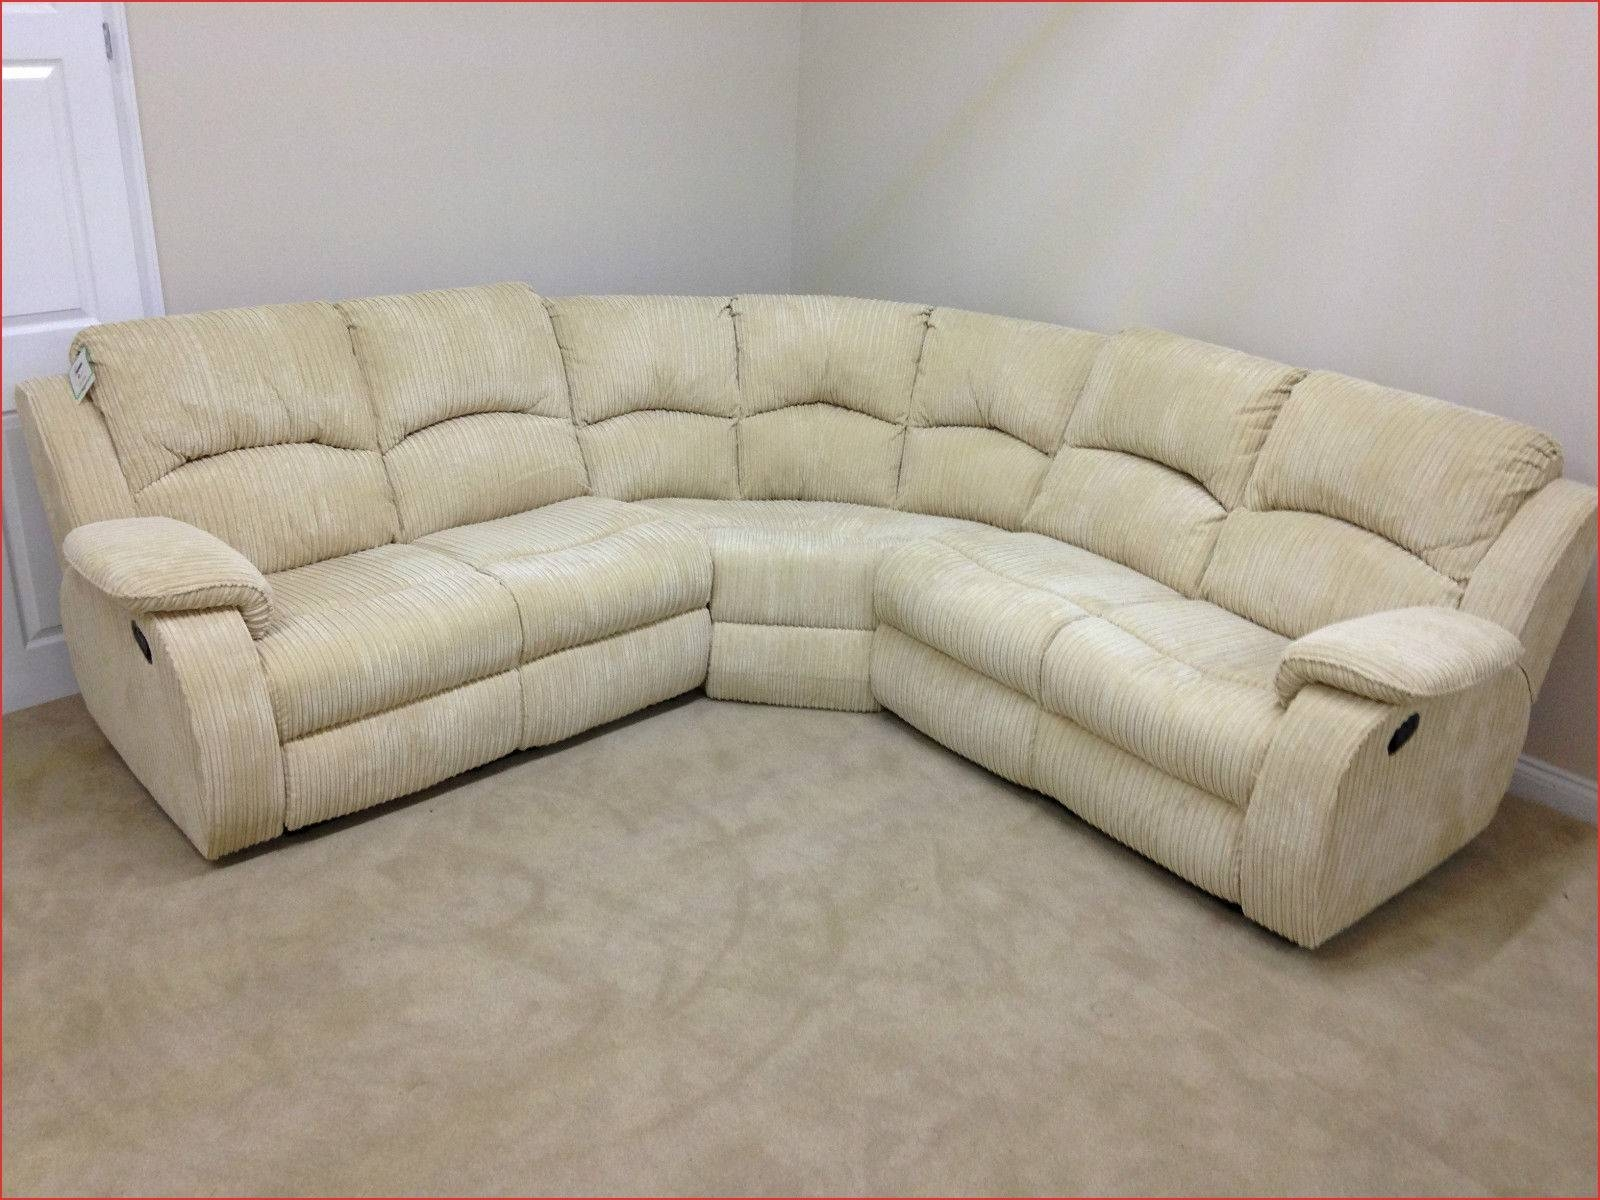 Fabriccornersofas Unique Corner Sofa Fabric Cream Recliner Venice regarding Unique Corner Sofas (Image 7 of 30)